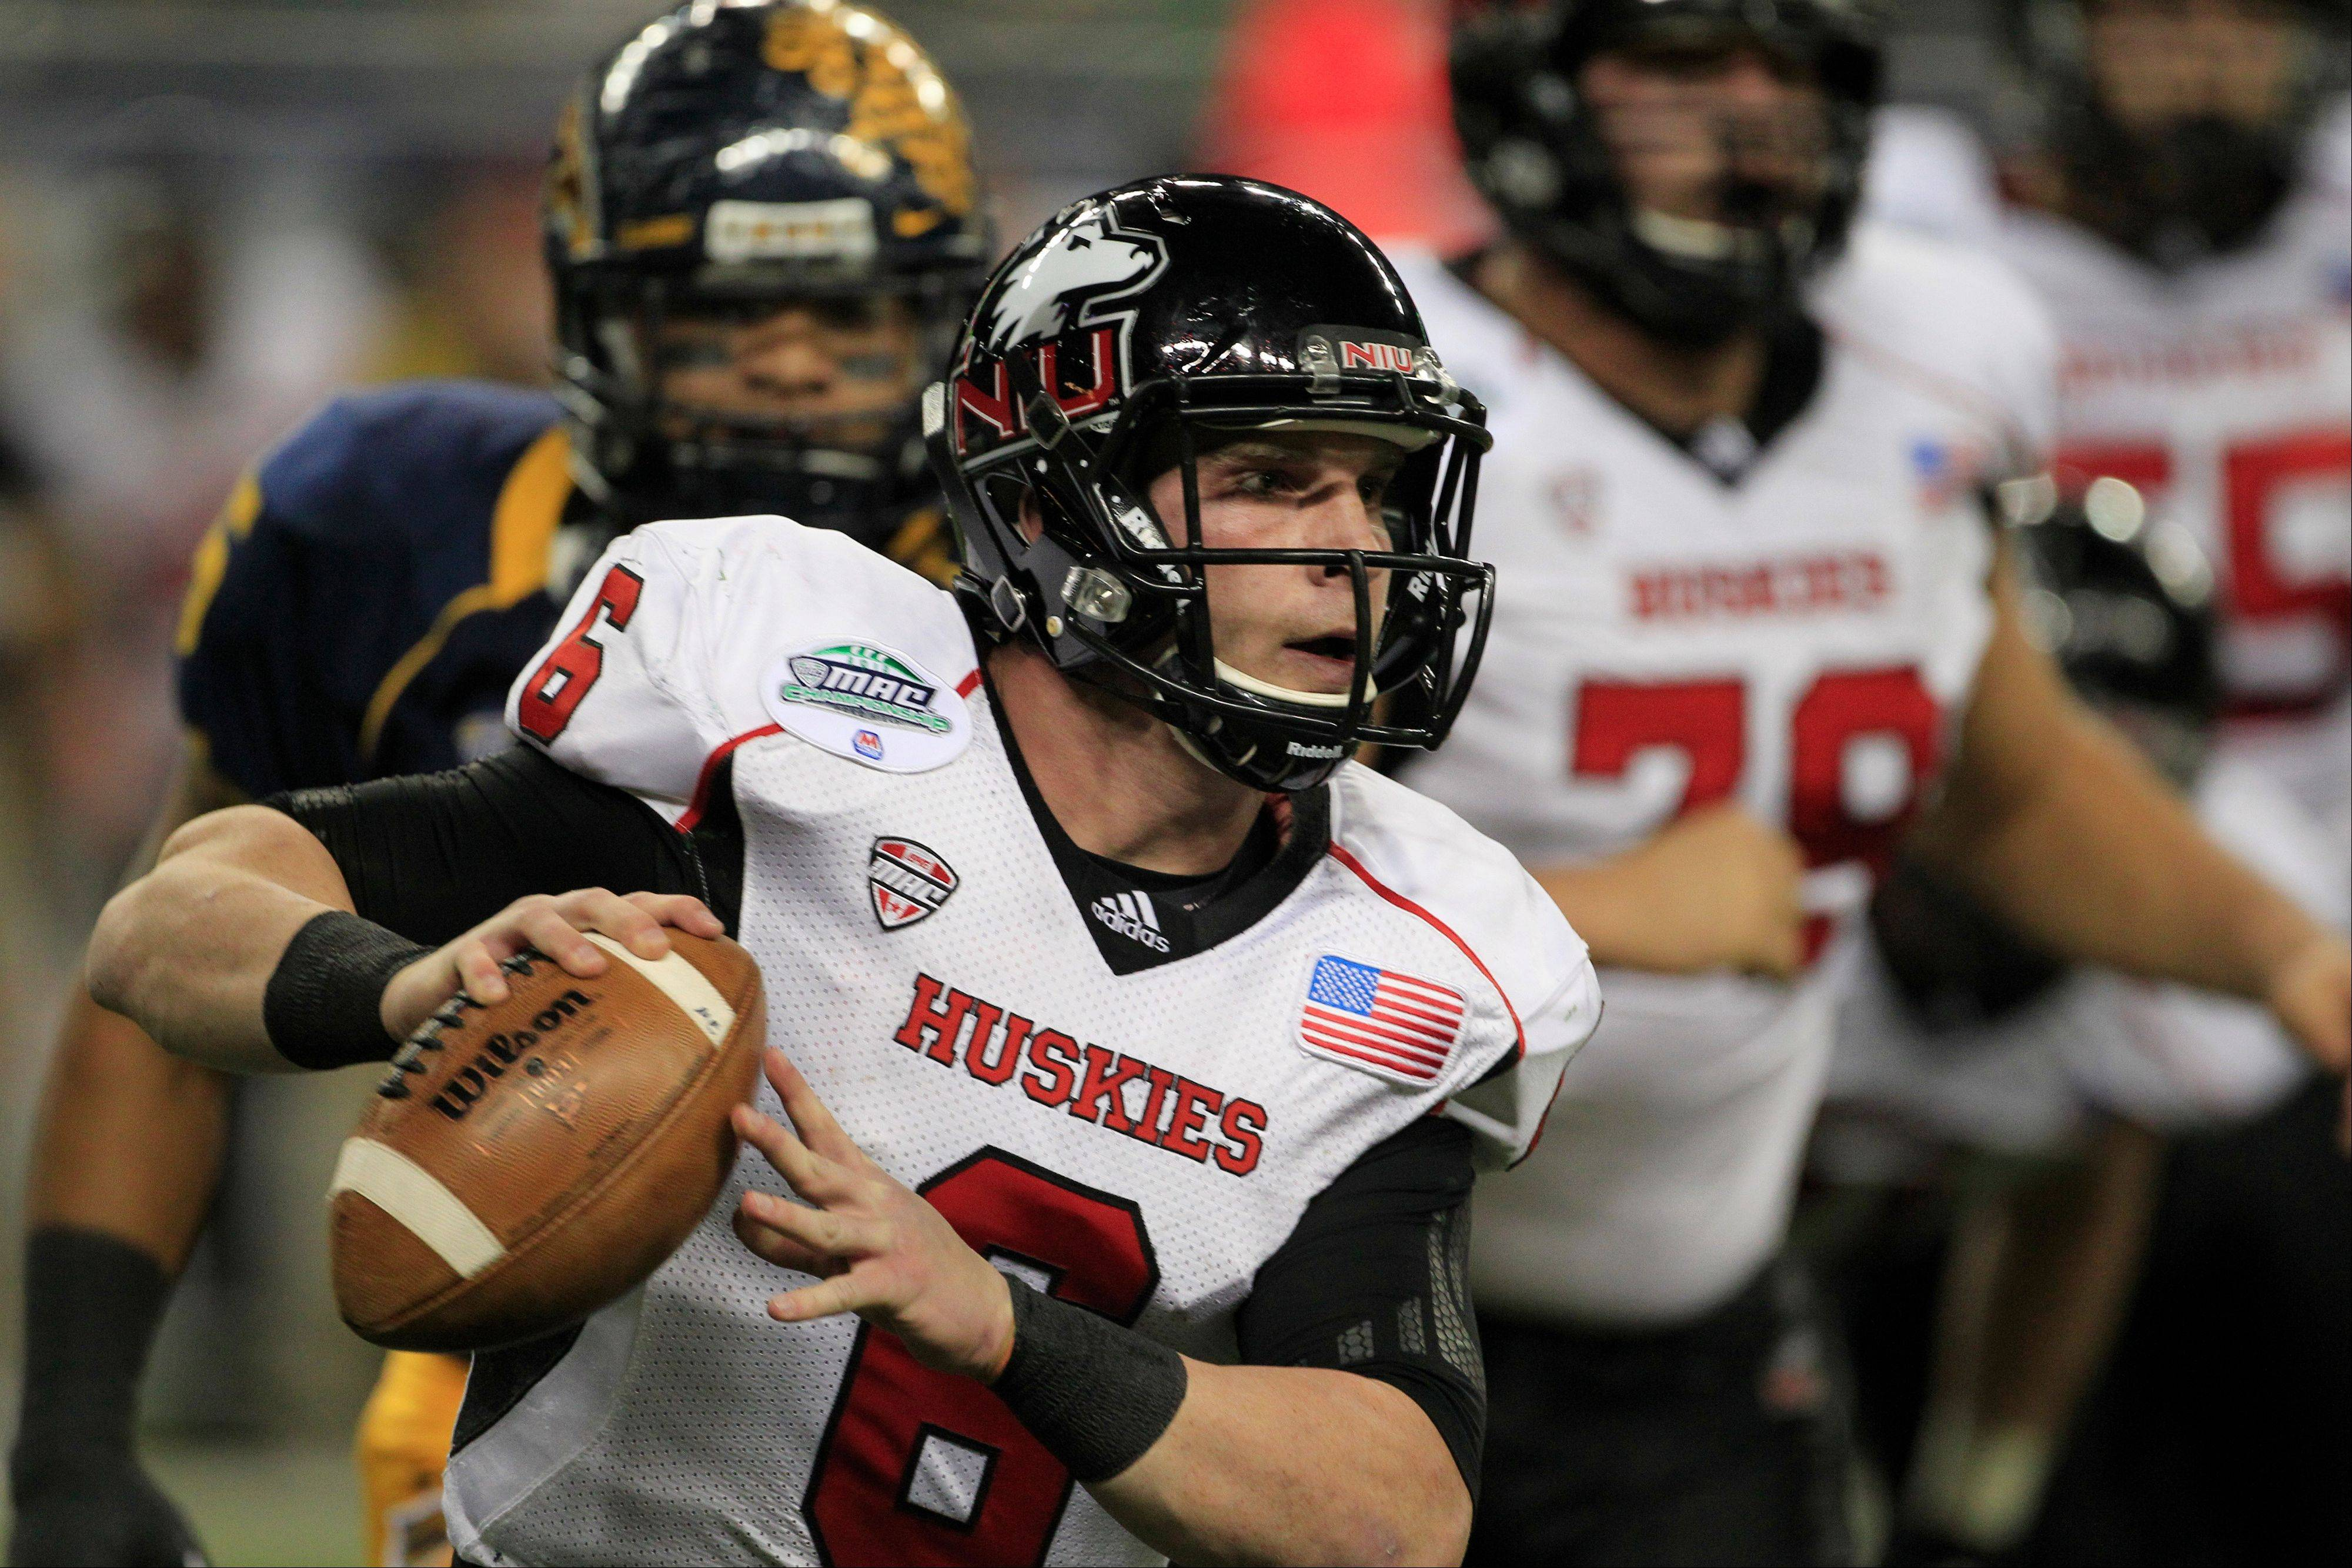 Jordan Lynch and the NIU Huskies will play Florida State in the Orange Bowl on Jan. 1.